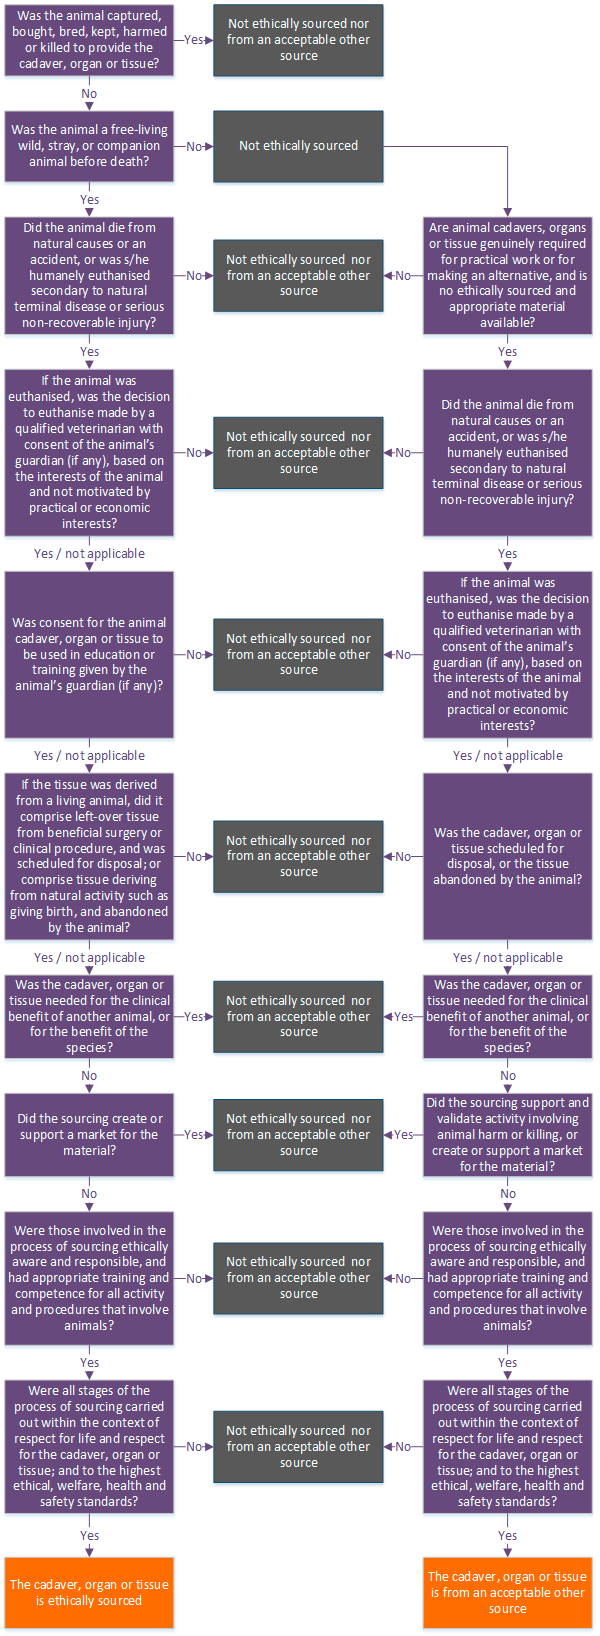 Flowchart to determine the source of an animal cadaver, organ or tissue